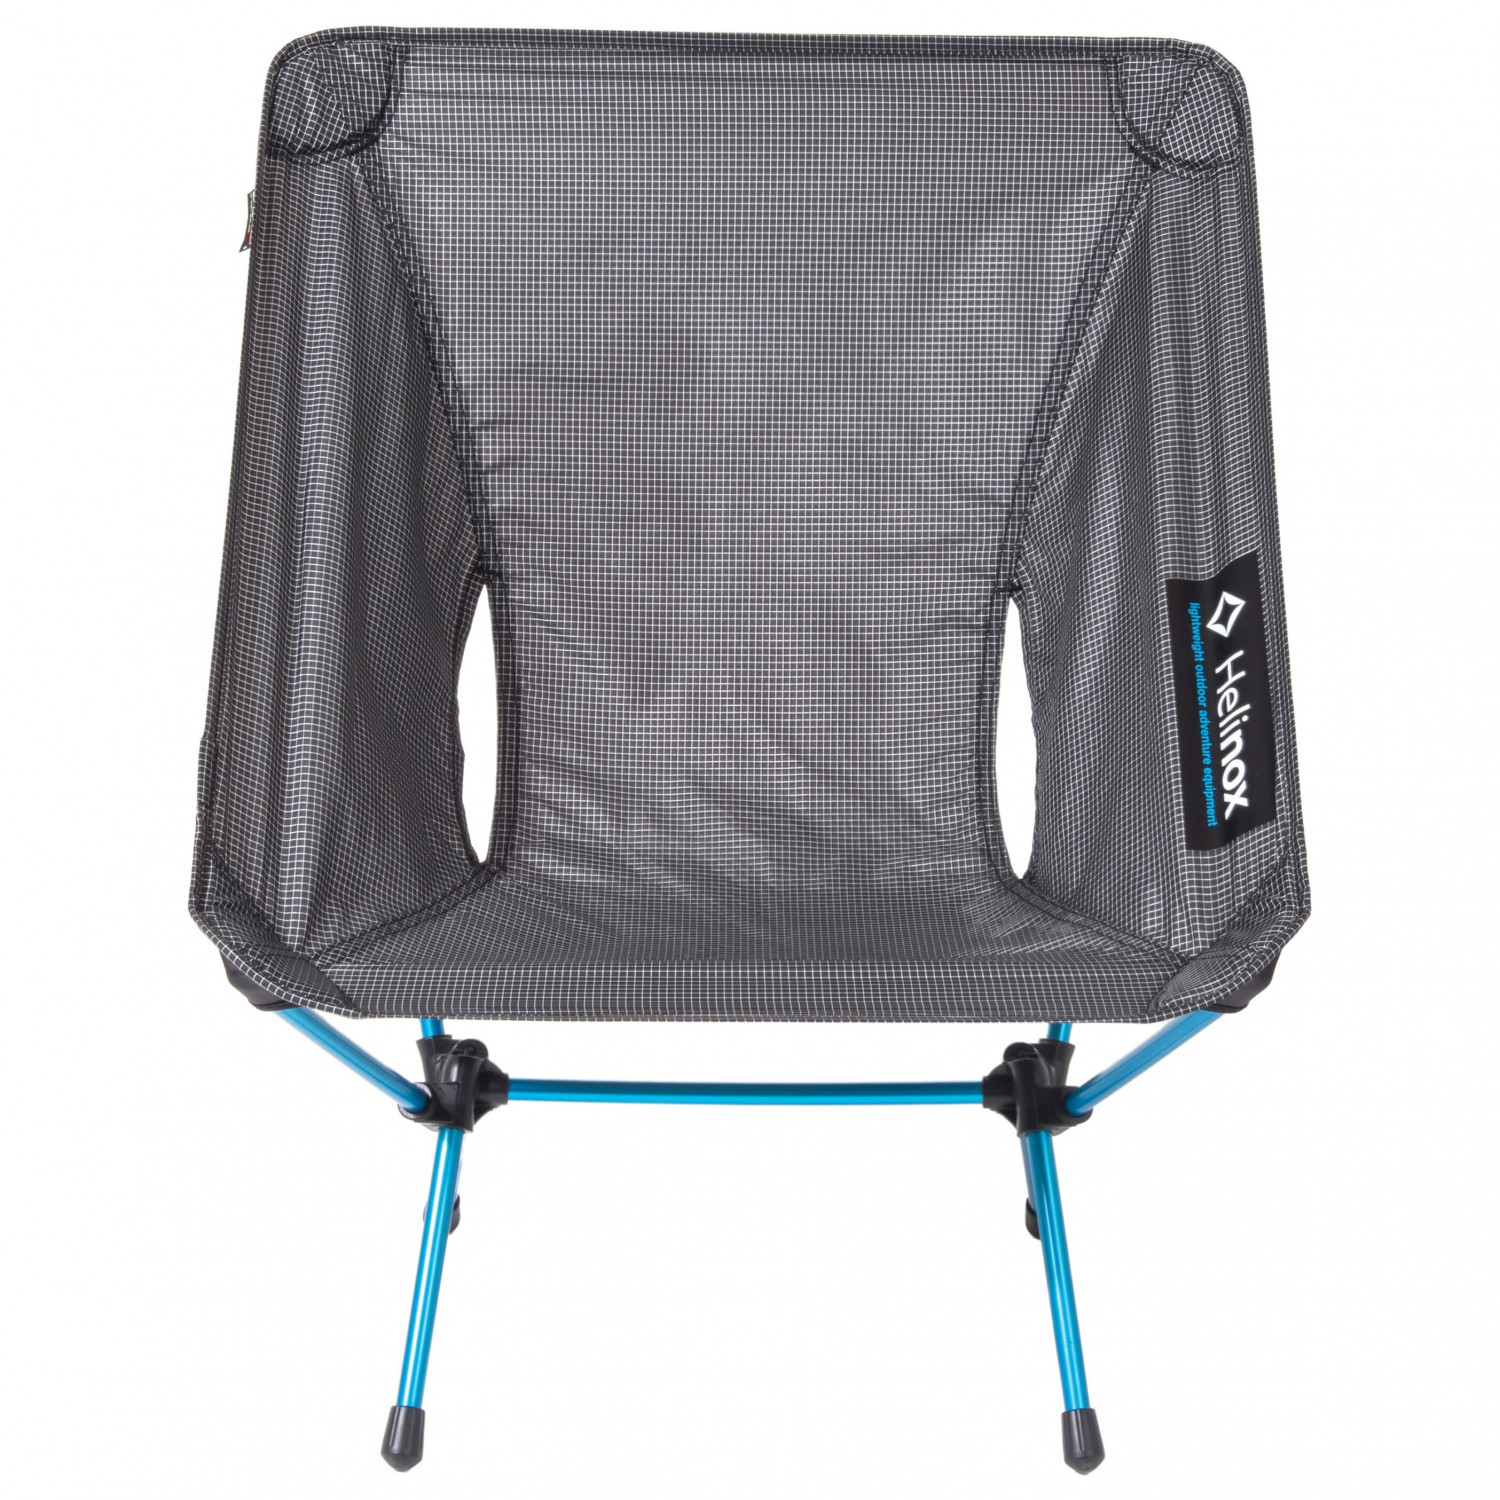 Helinox Chairs Helinox Chair Zero Camping Chair Free Uk Delivery